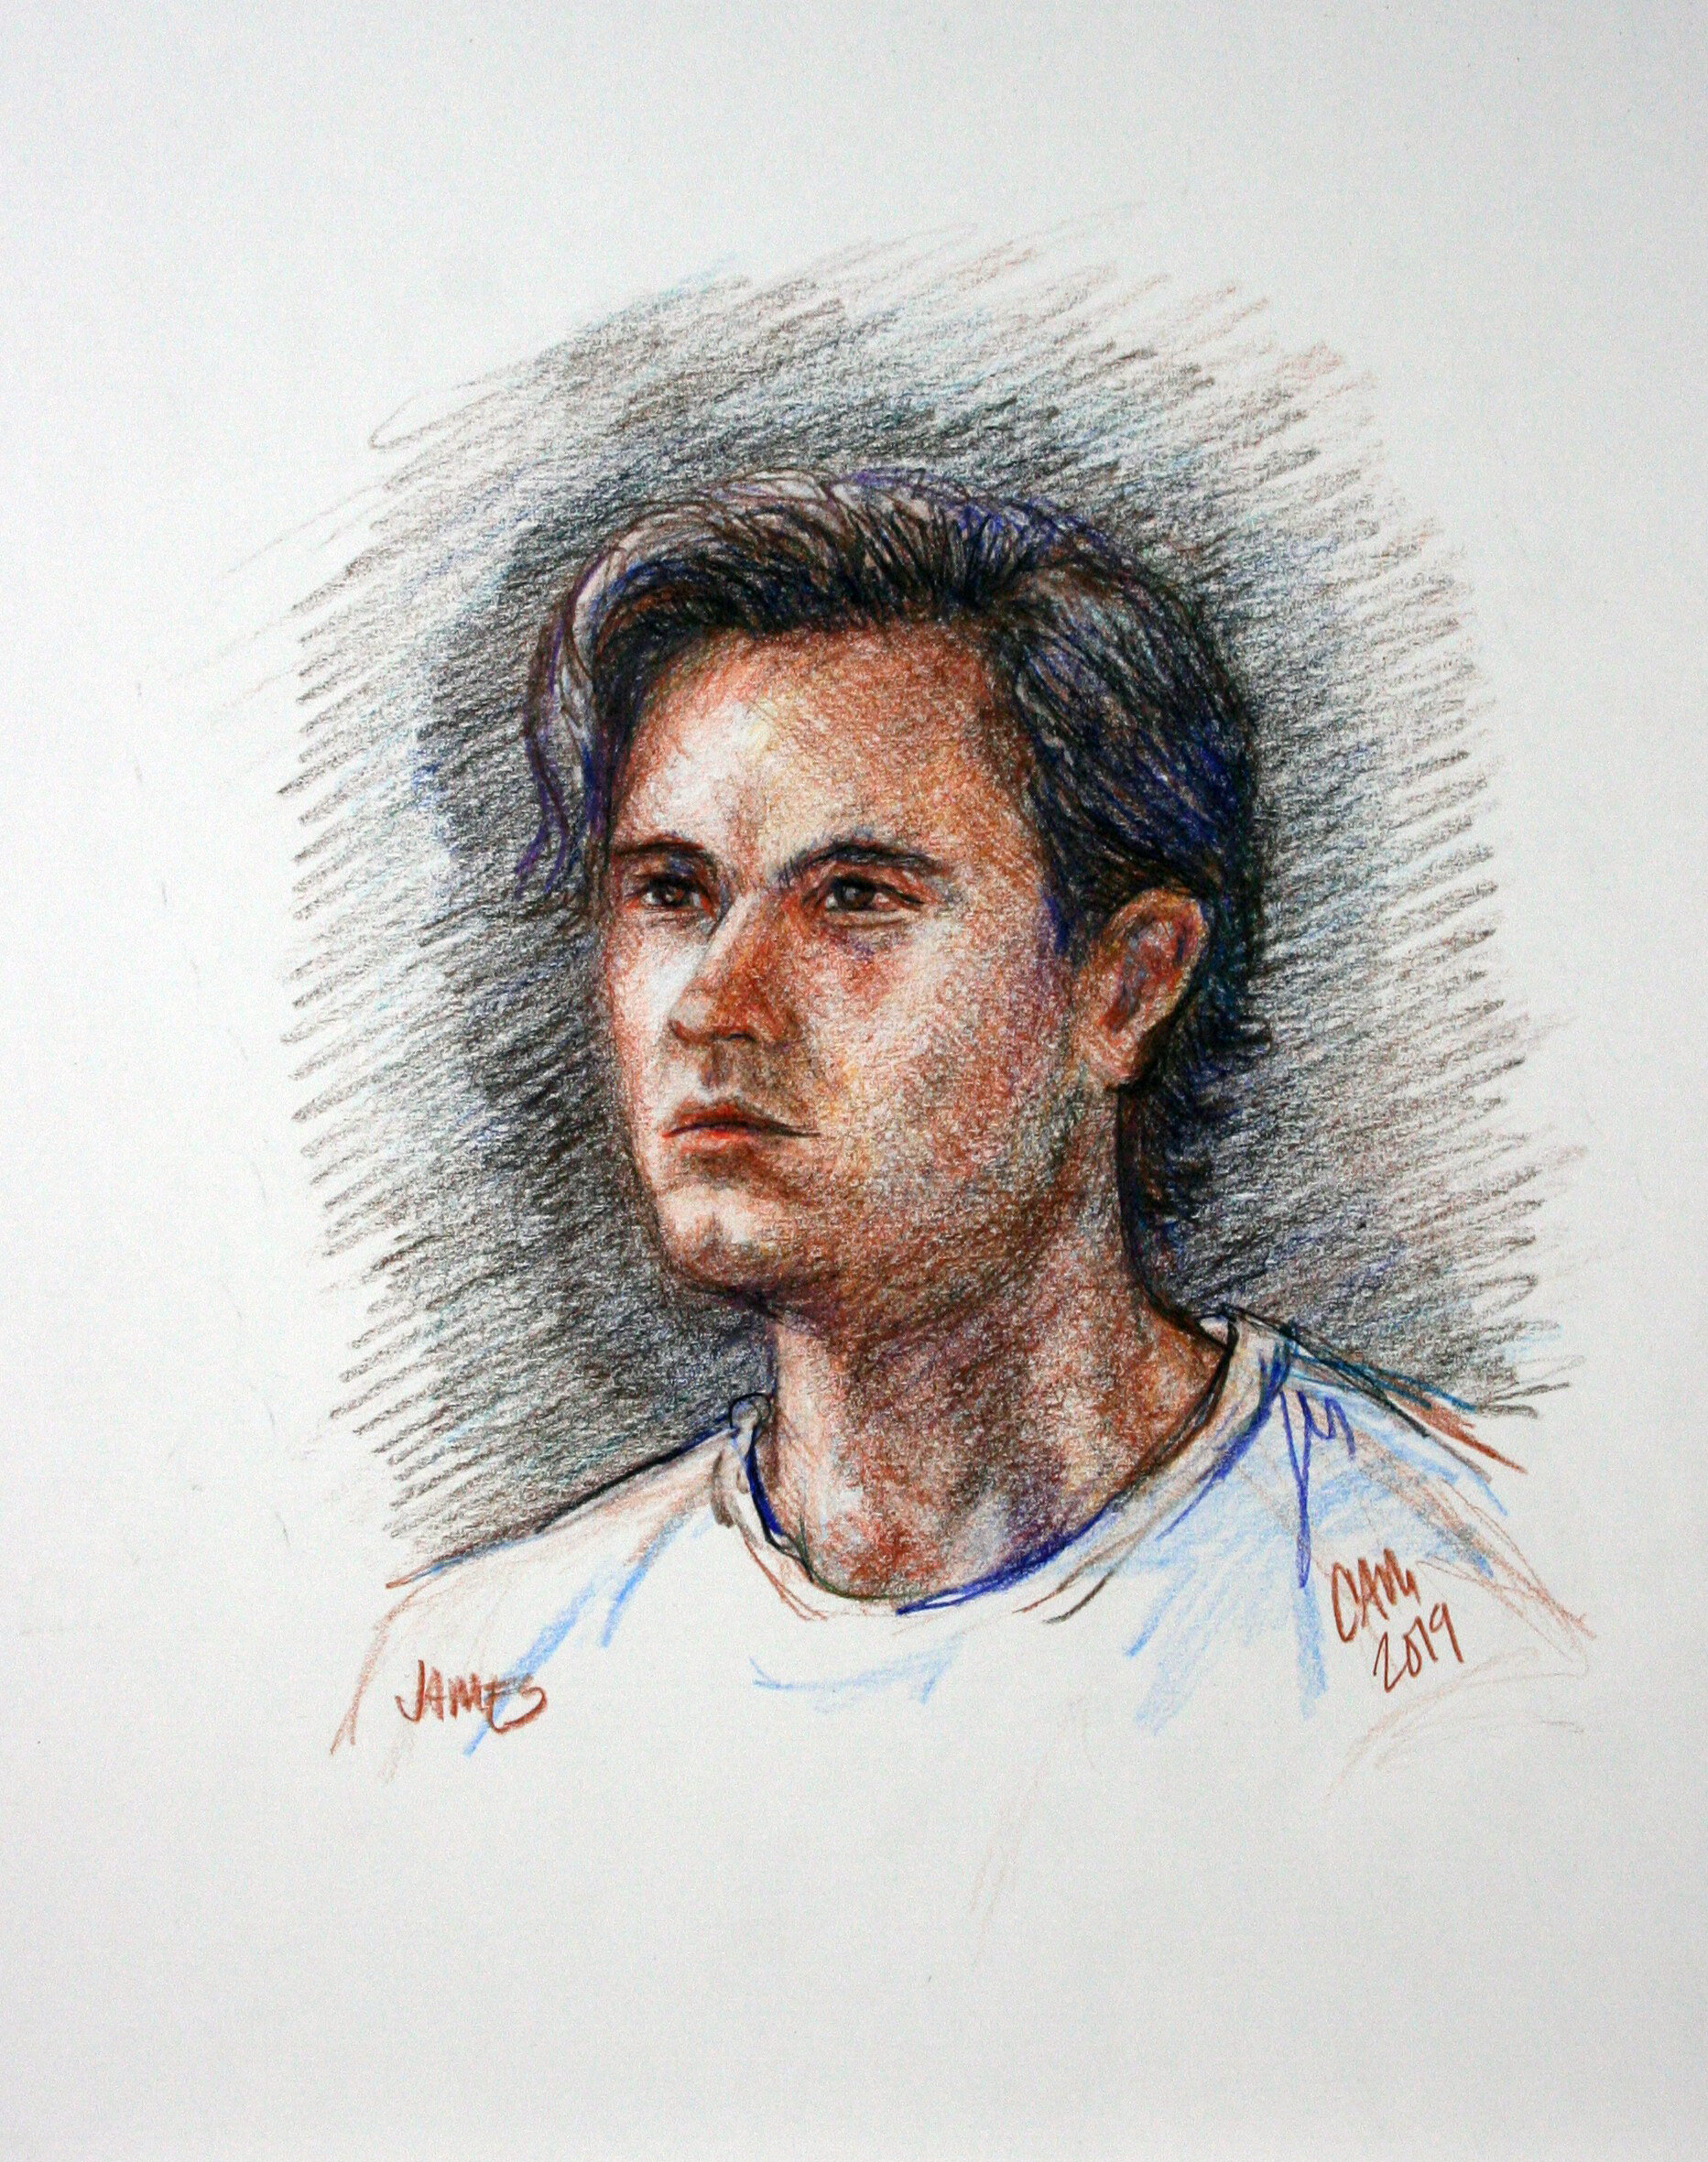 Cam Tulcewicz - Colored pencils